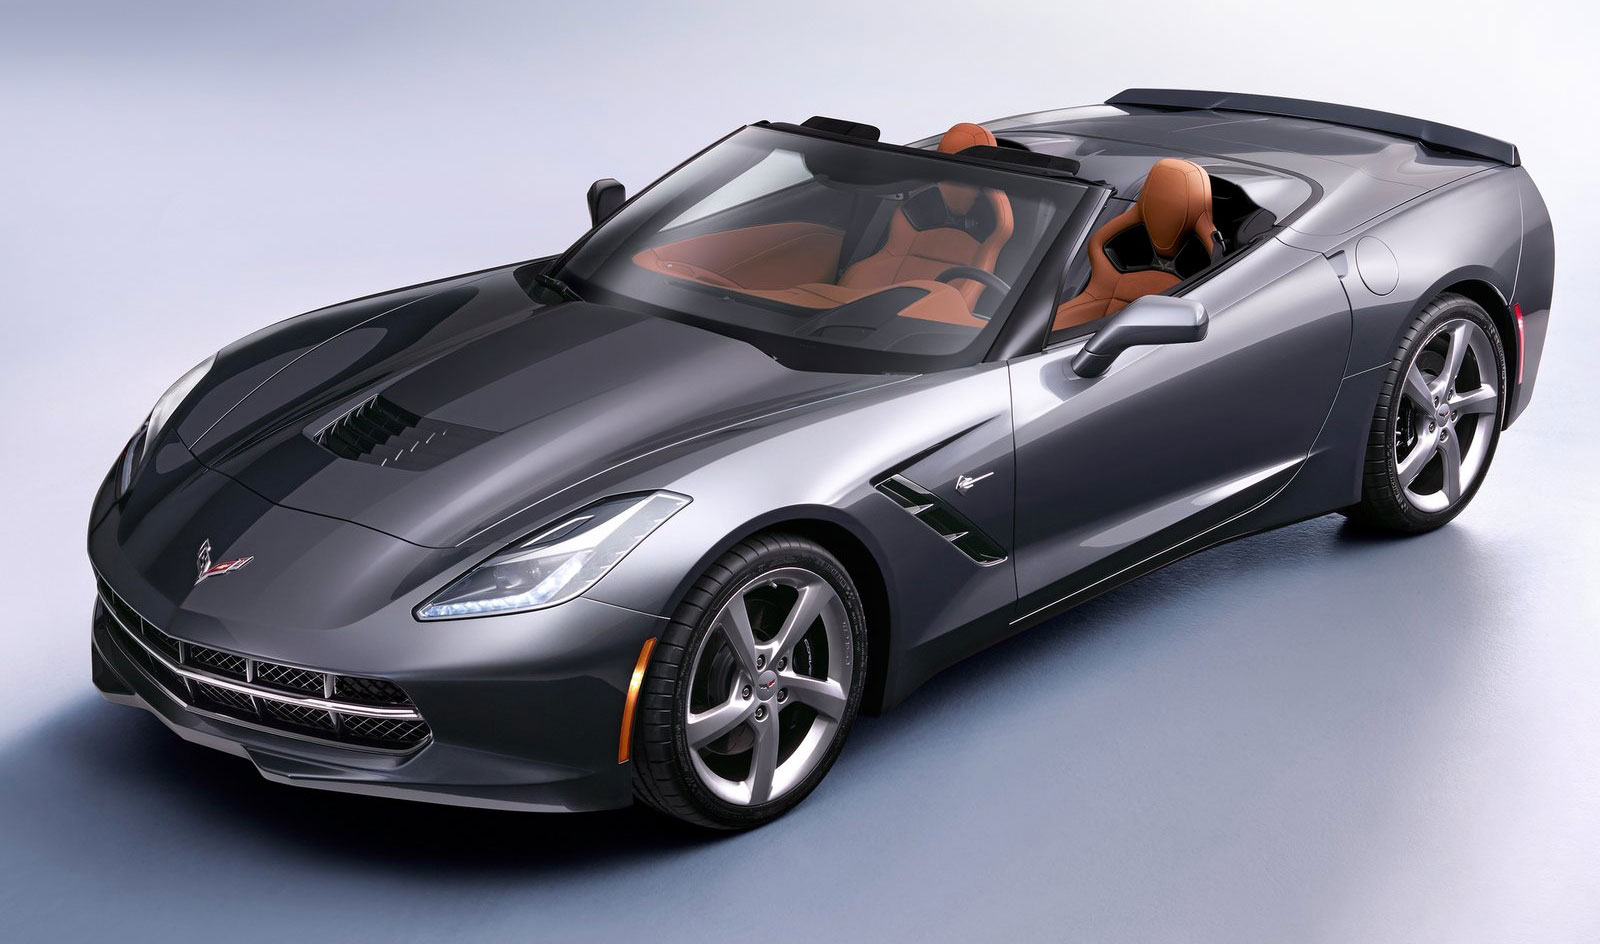 2019 Chevrolet Corvette C7 Stingray Convertible photo - 1